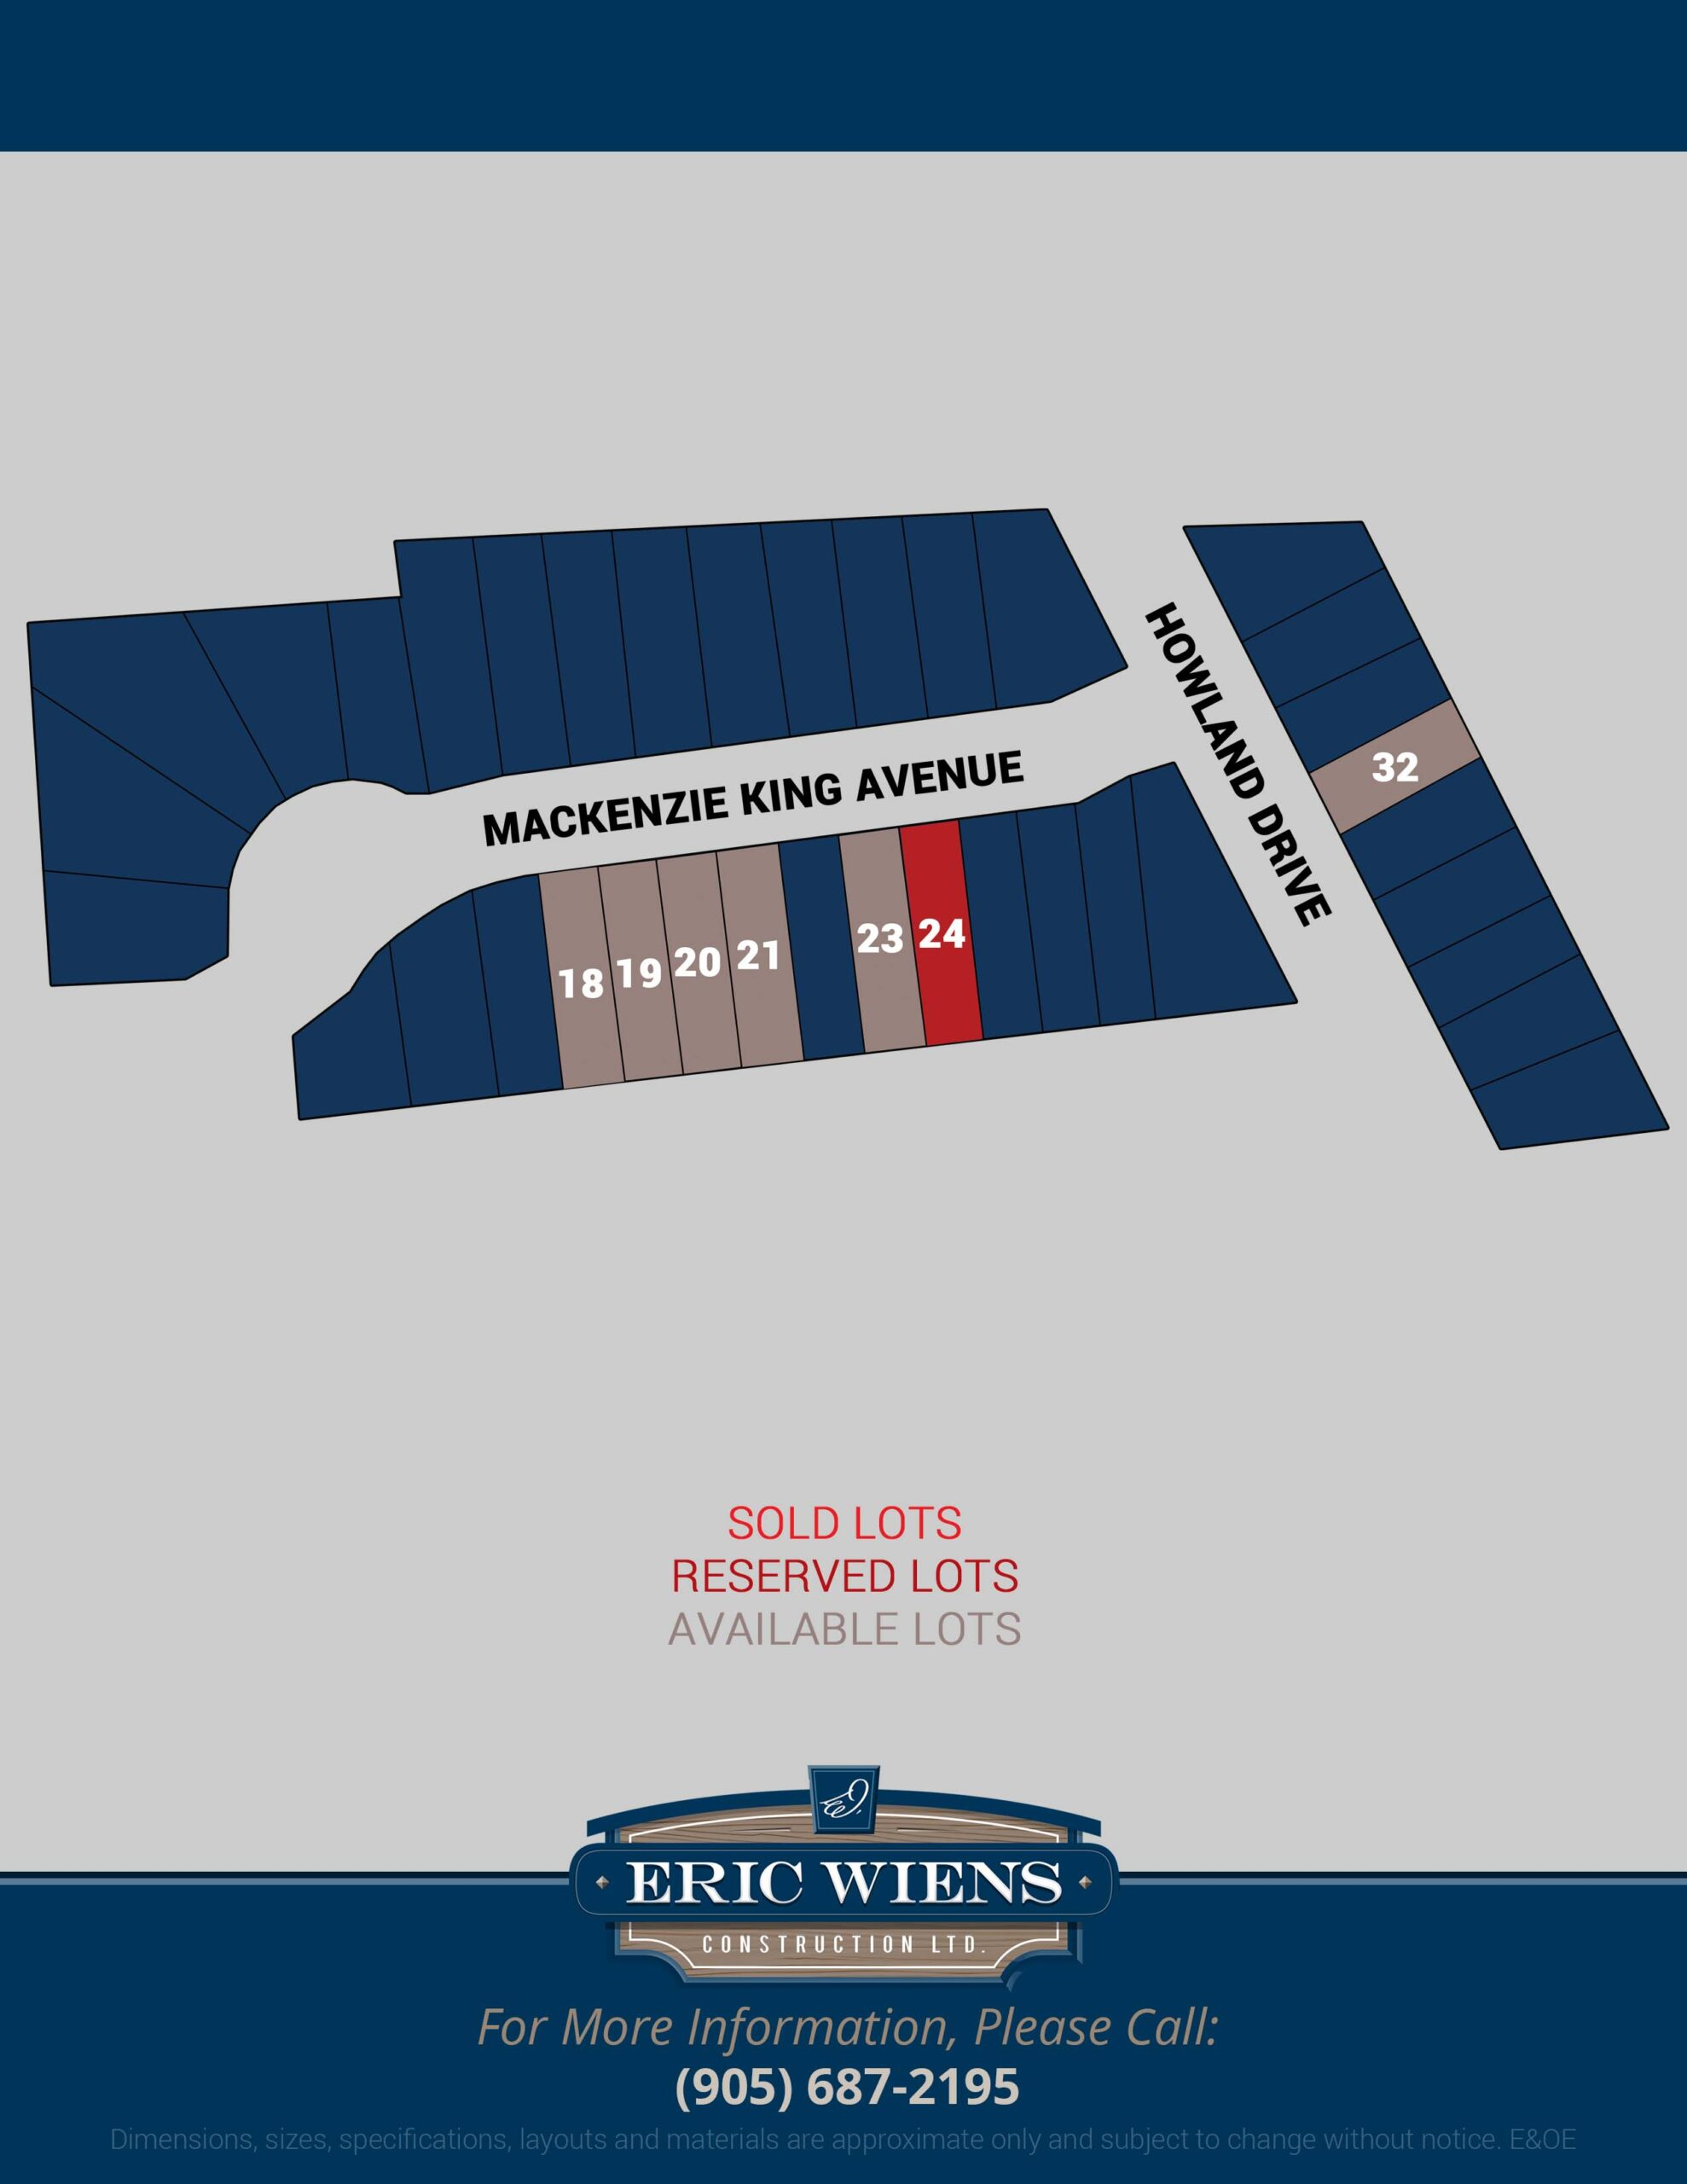 Lot 21 Mackenzie King Avenue Site Plan